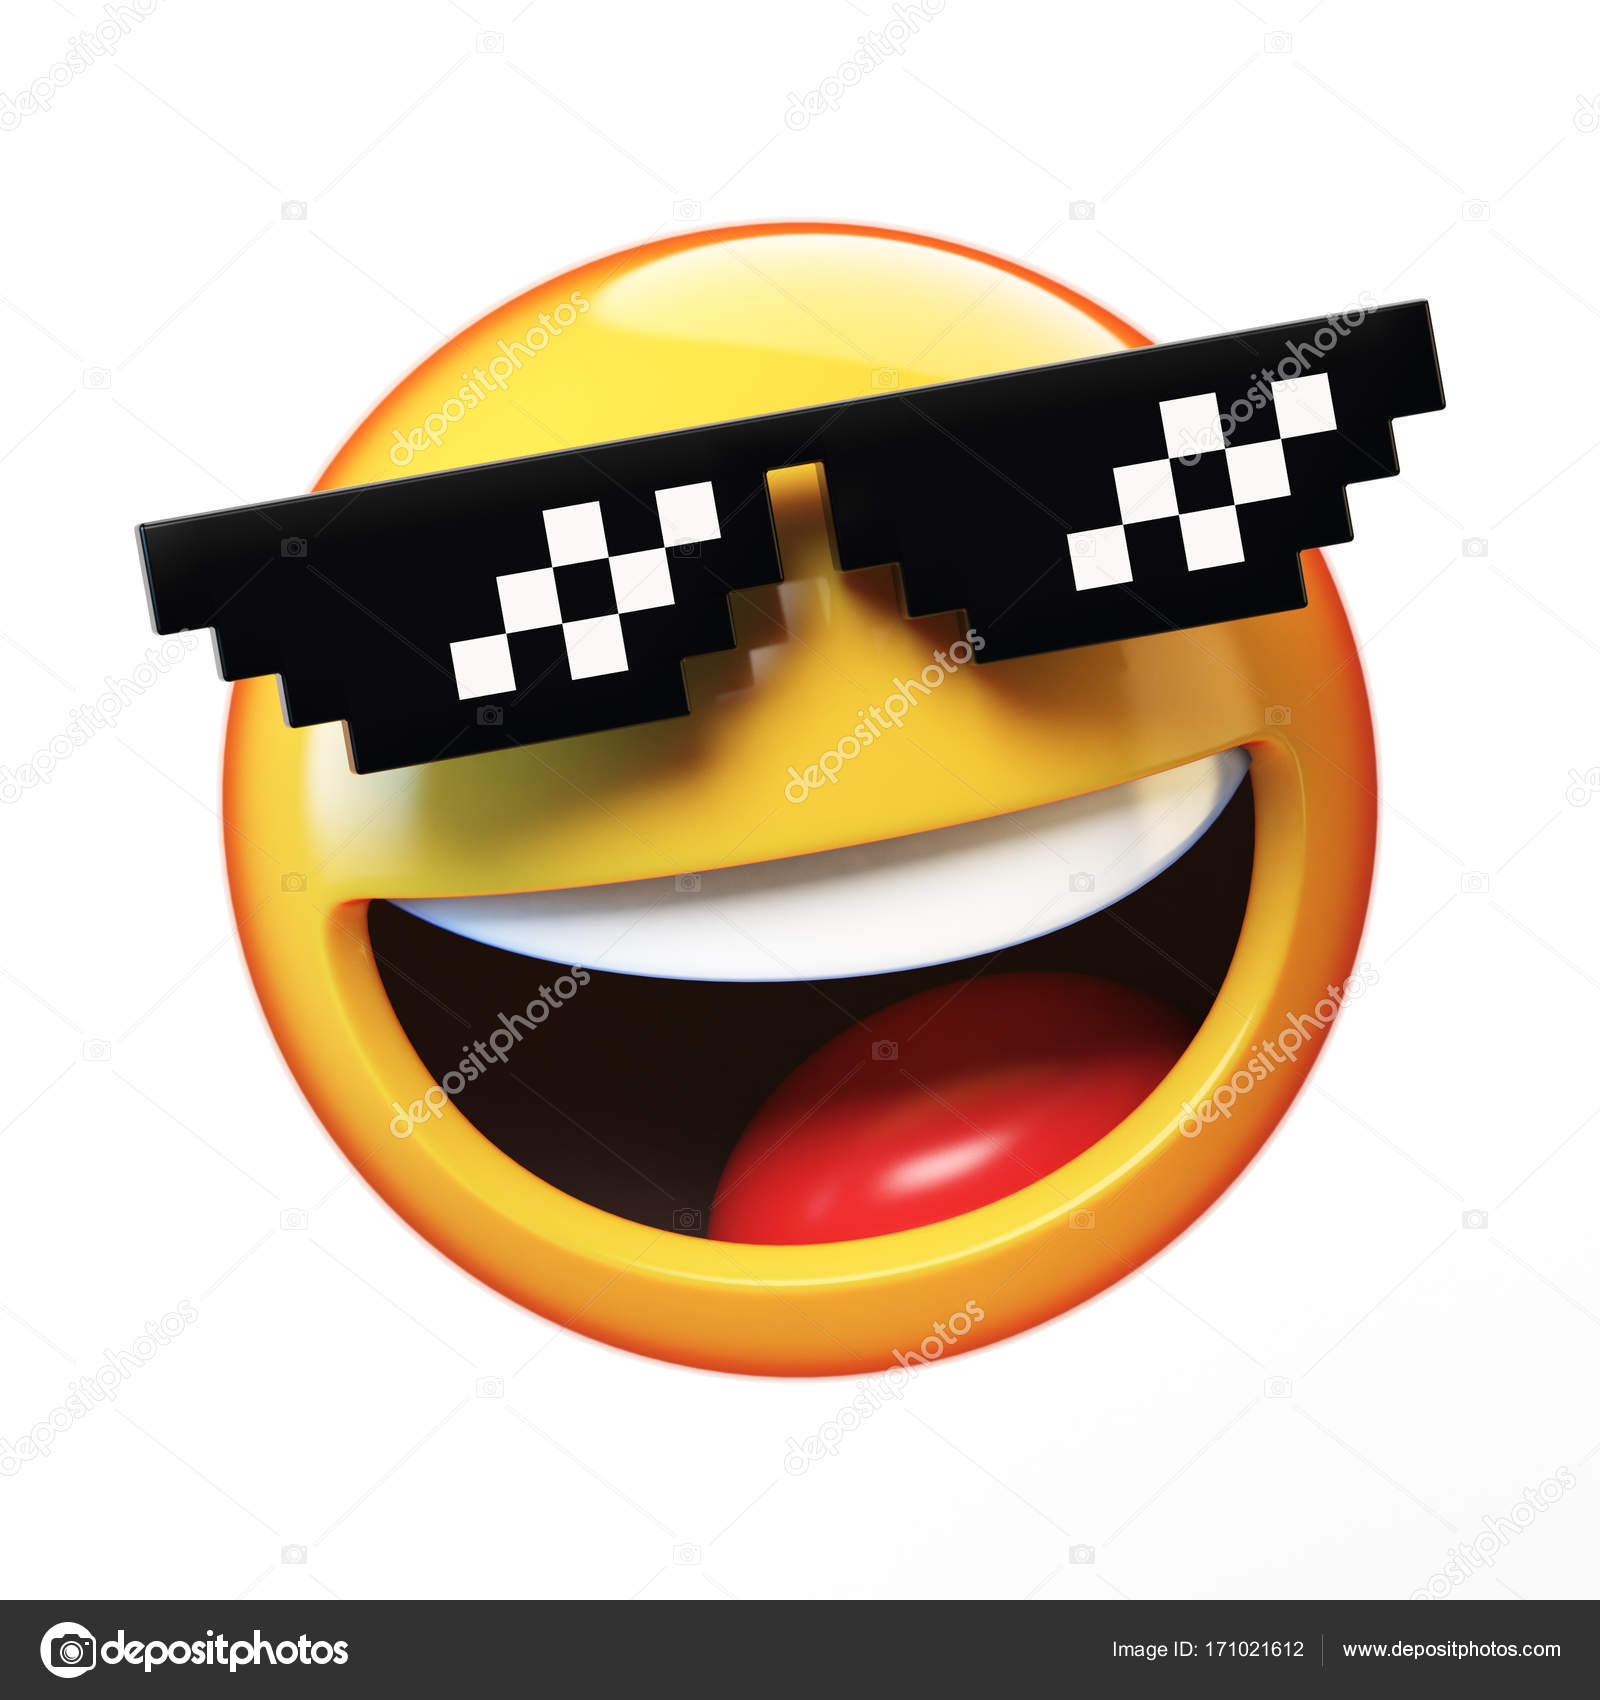 Cool emoji isolated on white background smiling emoticon with cool emoji isolated on white background smiling emoticon with sunglasses 3d rendering photo by koya979 biocorpaavc Images